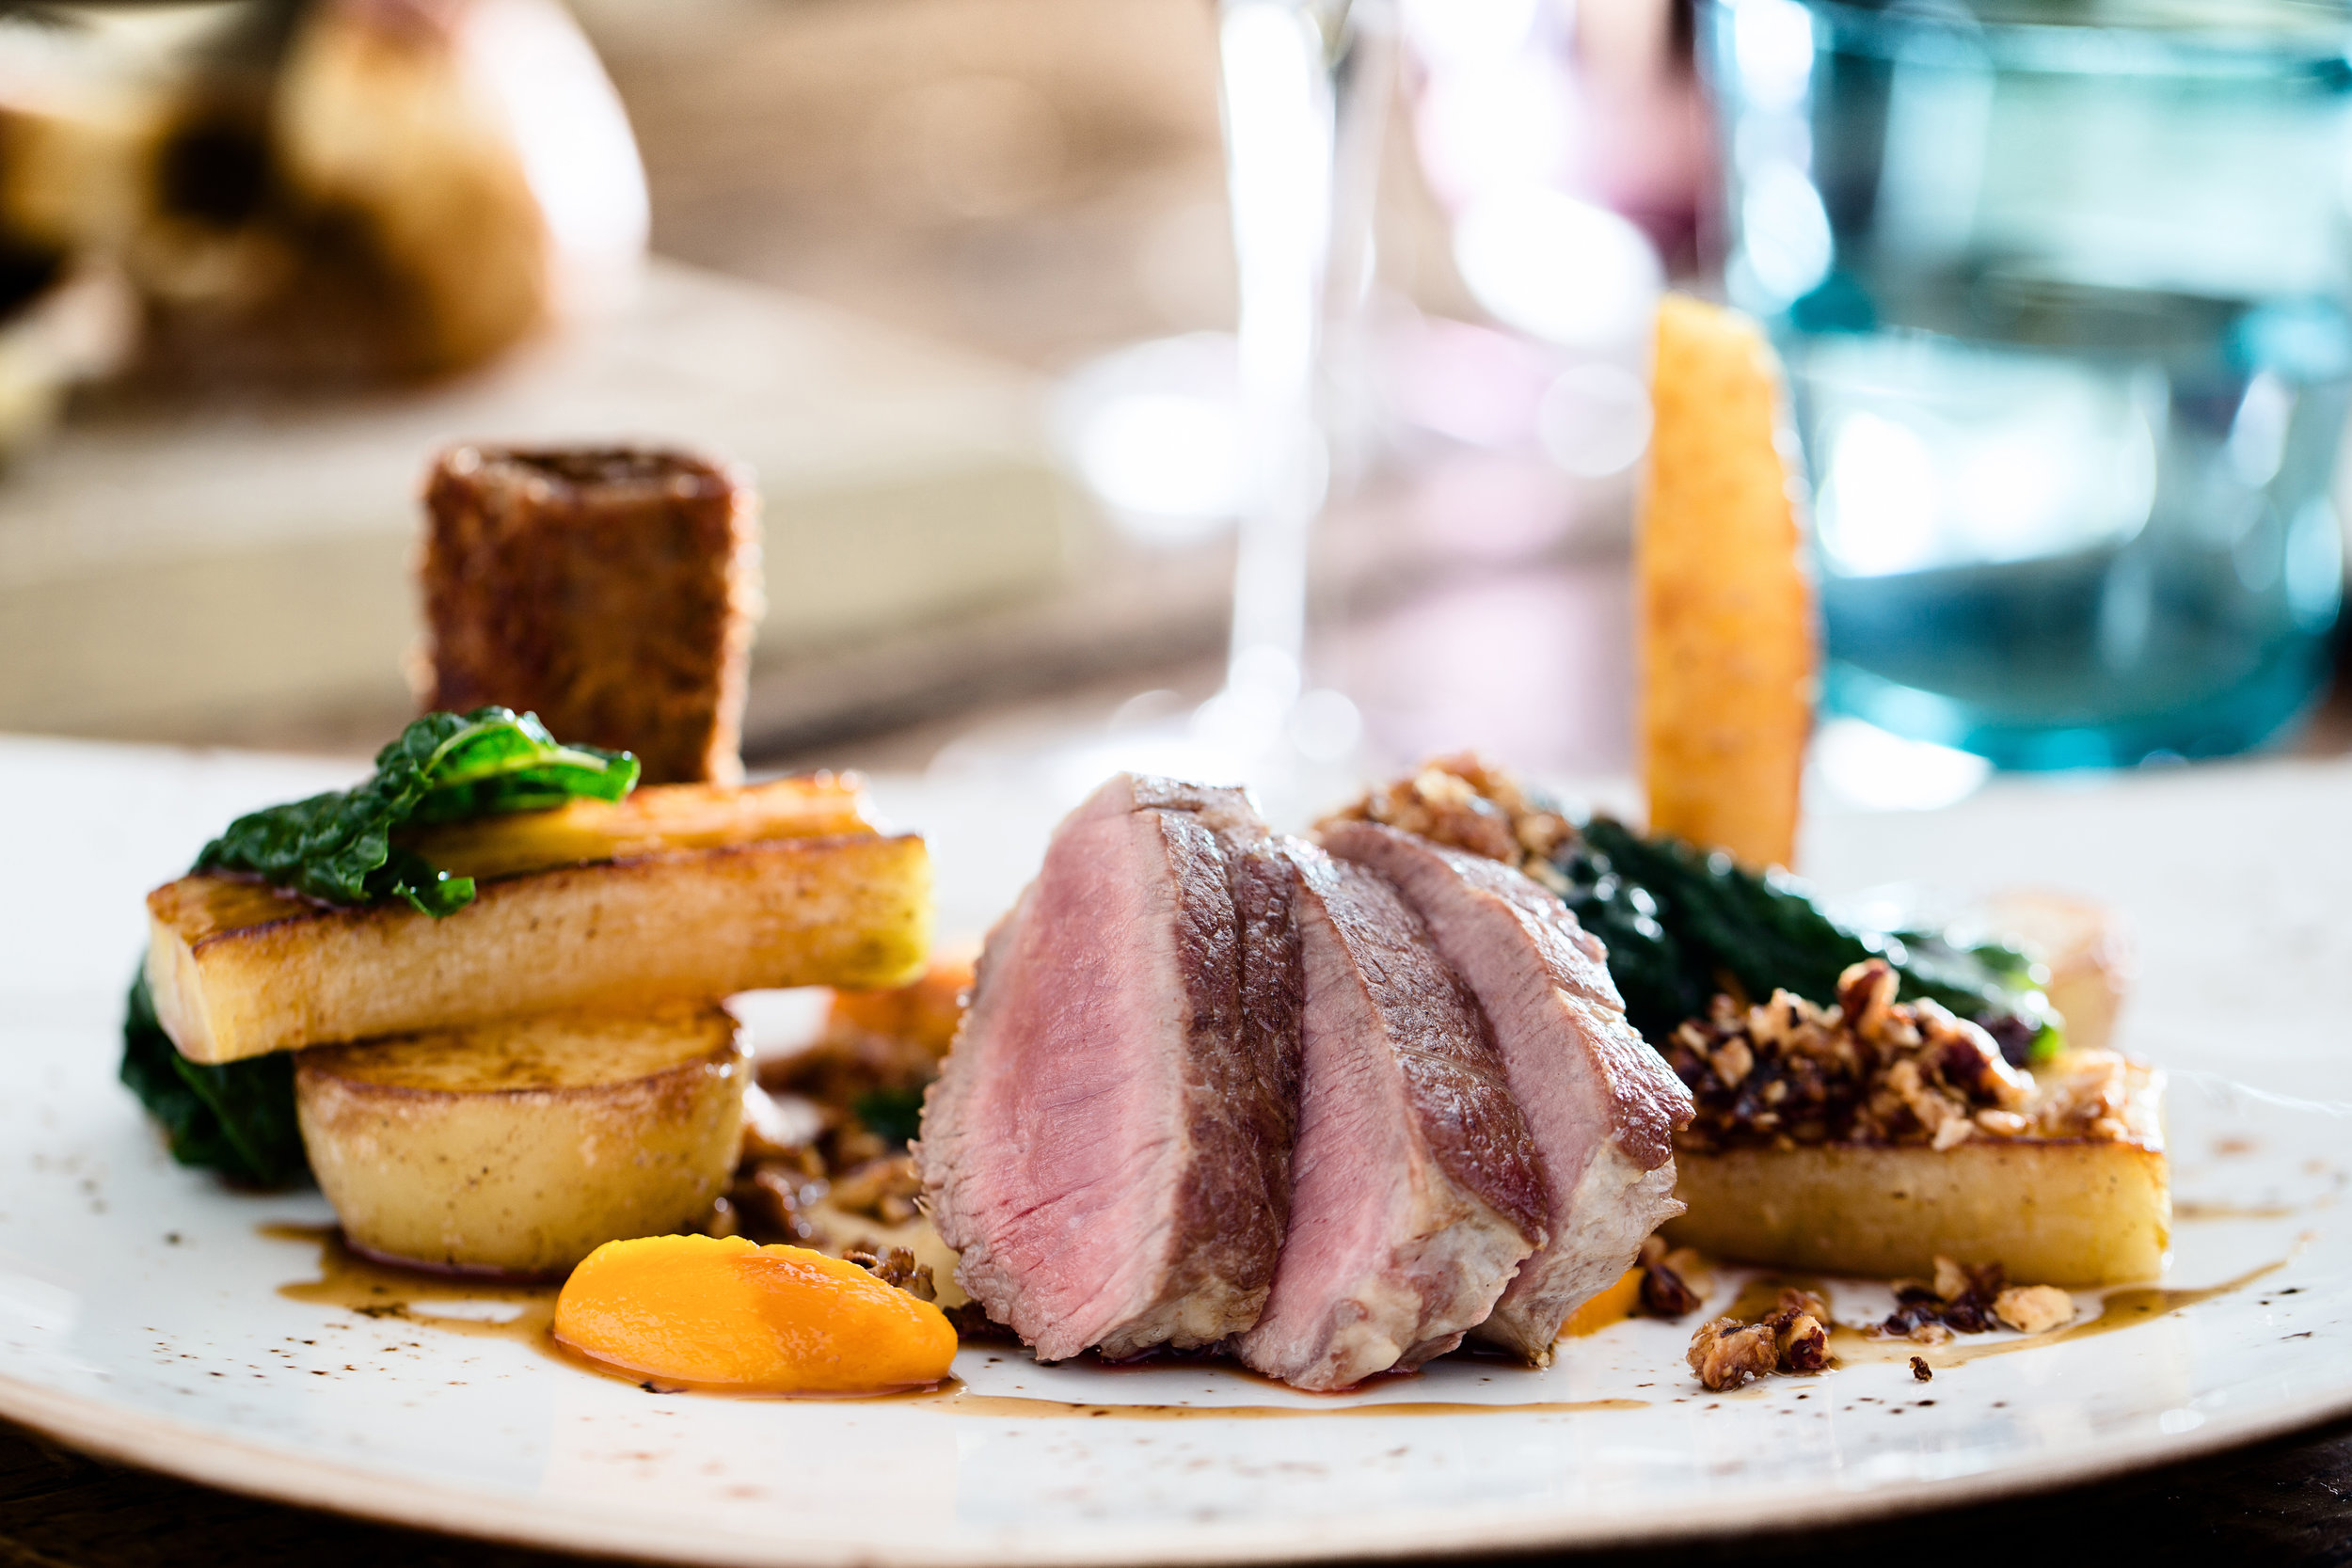 Food at The Kings Hotel Chipping Campden